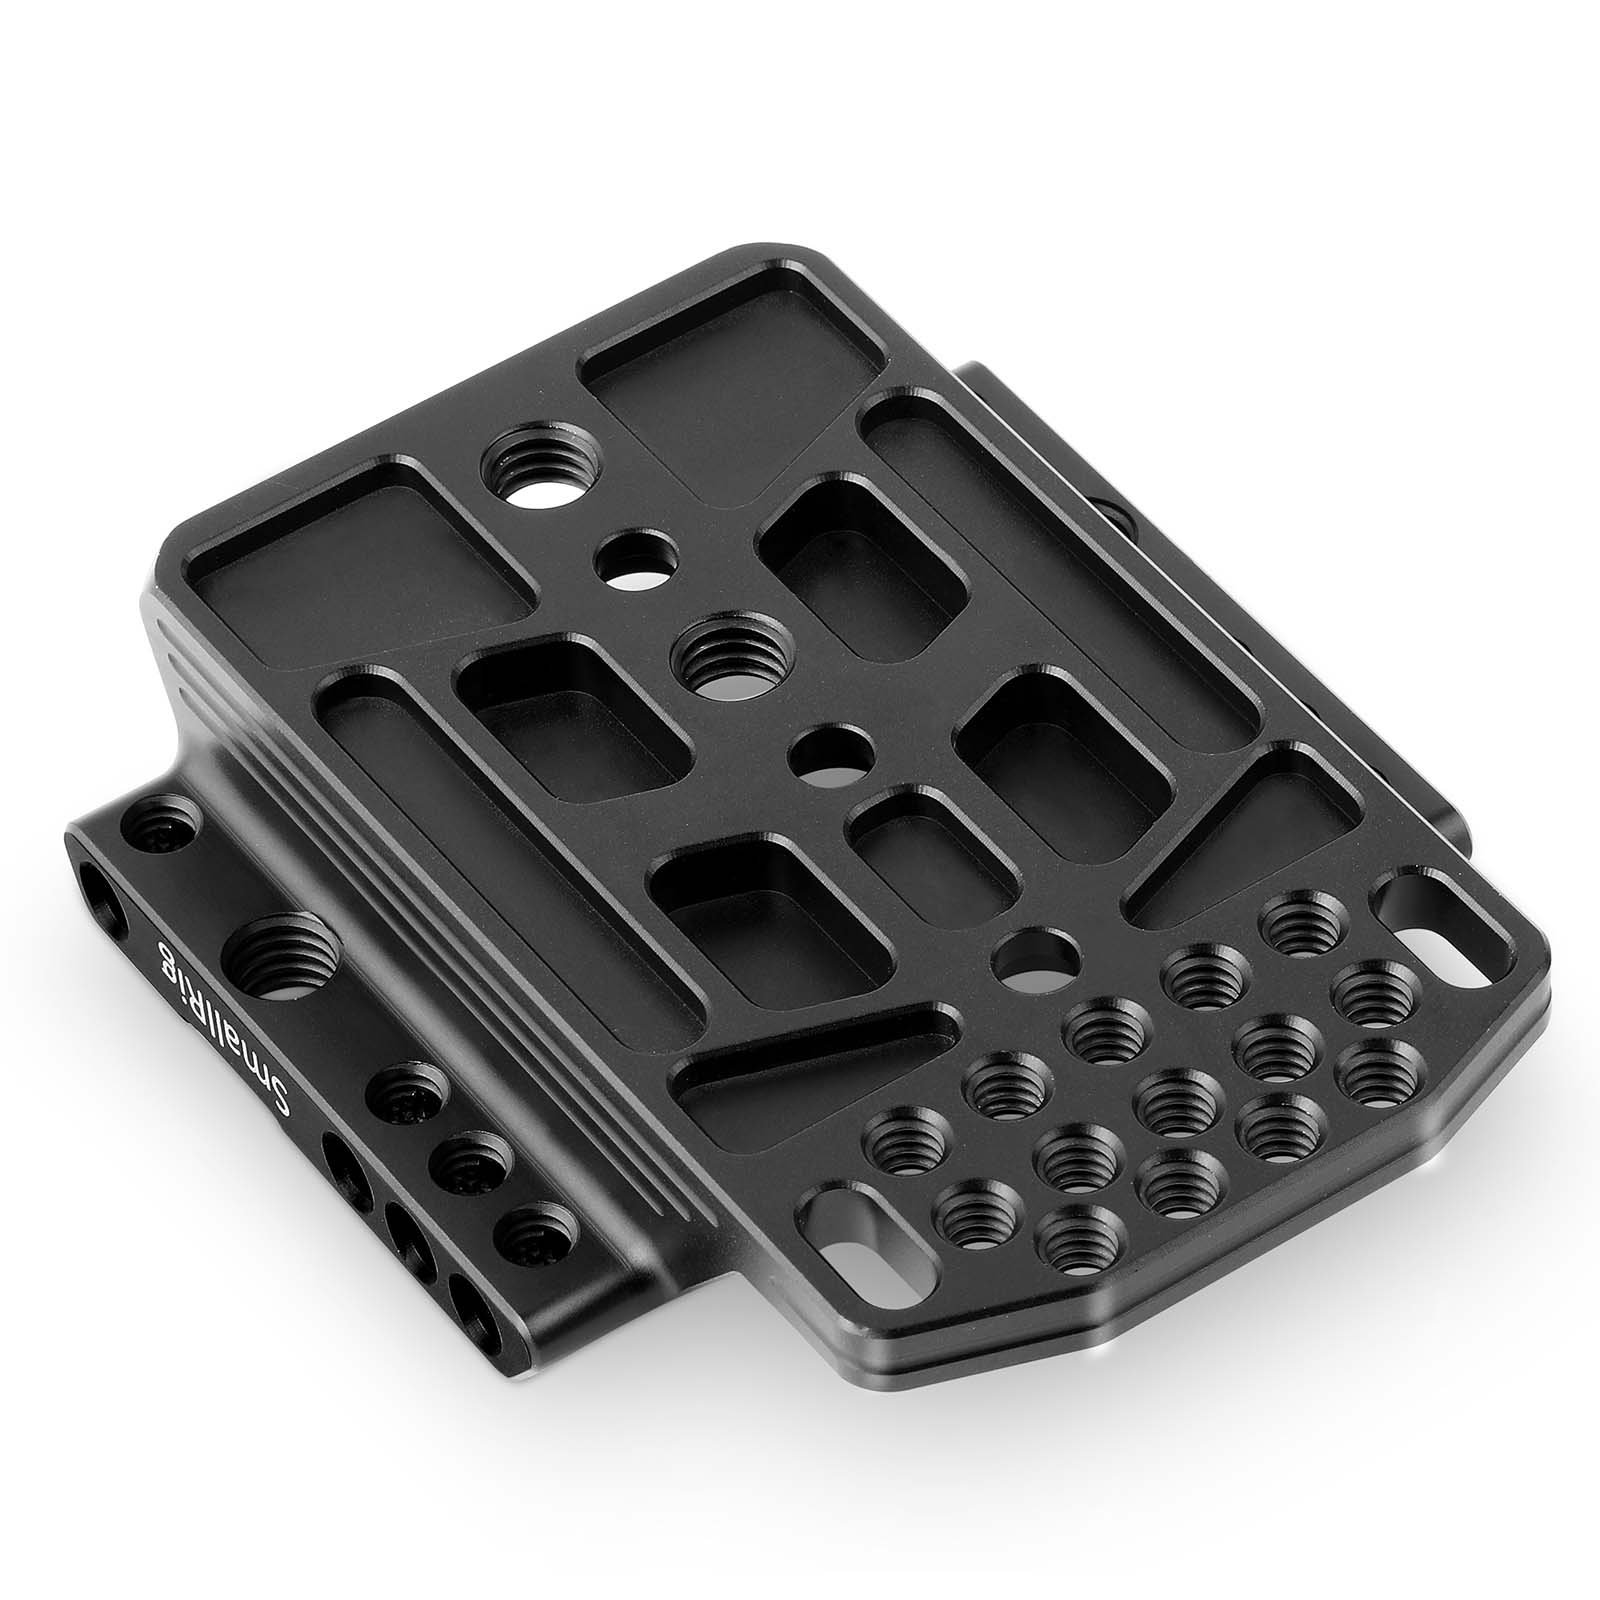 """SMALLRIG Top Plate Cheese Plate for Blackmagic URSA Mini/Mini Pro Original EVF Viewfinder with 1/4"""" 3/8"""" Thread Locating Holes - 1958 by SMALLRIG (Image #2)"""